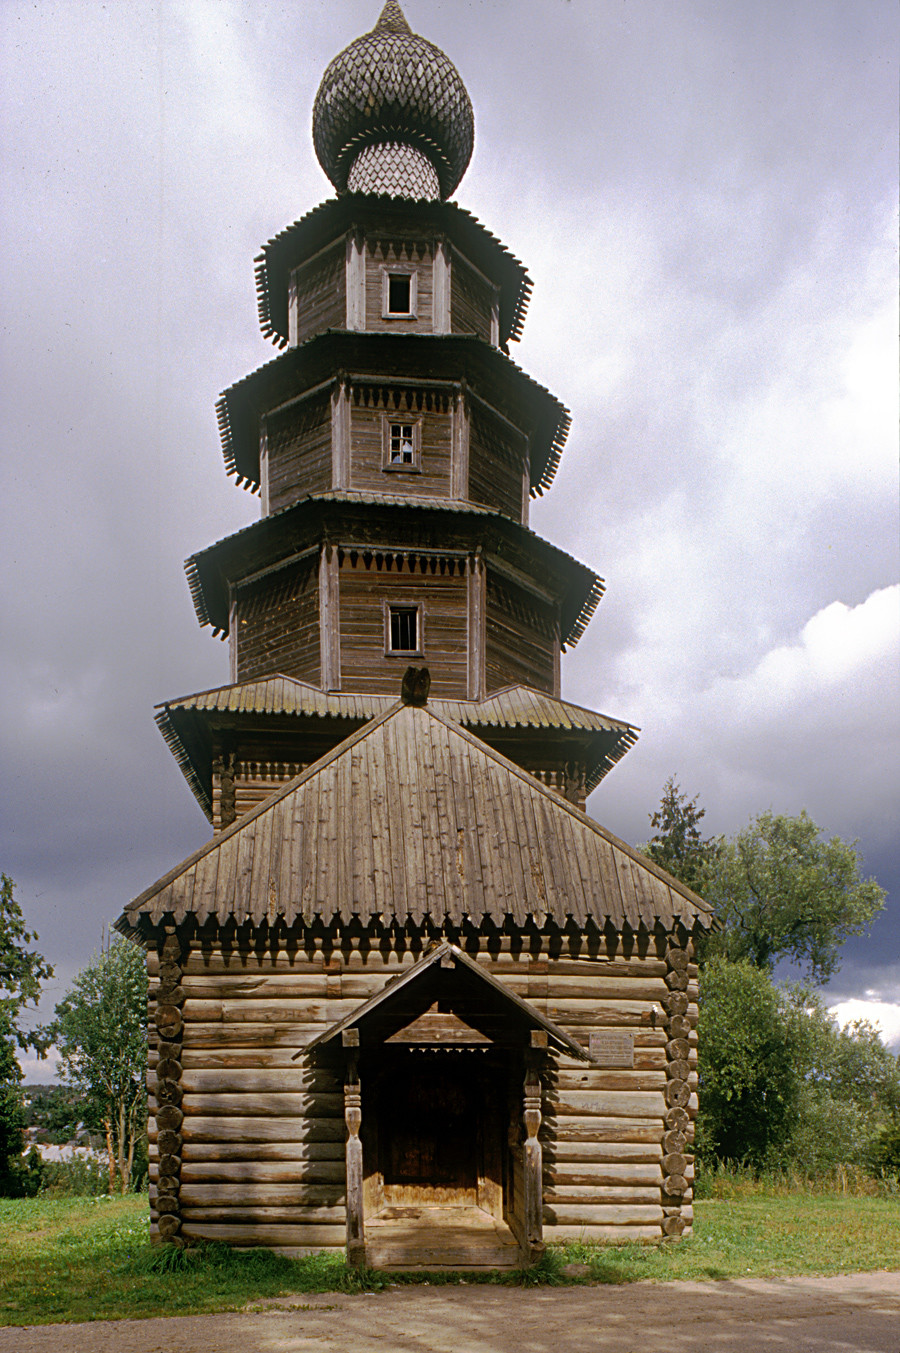 Church of the Tikhvin Icon (Old Church of the Ascension), west view with entrance porch. Aug. 13, 1995.